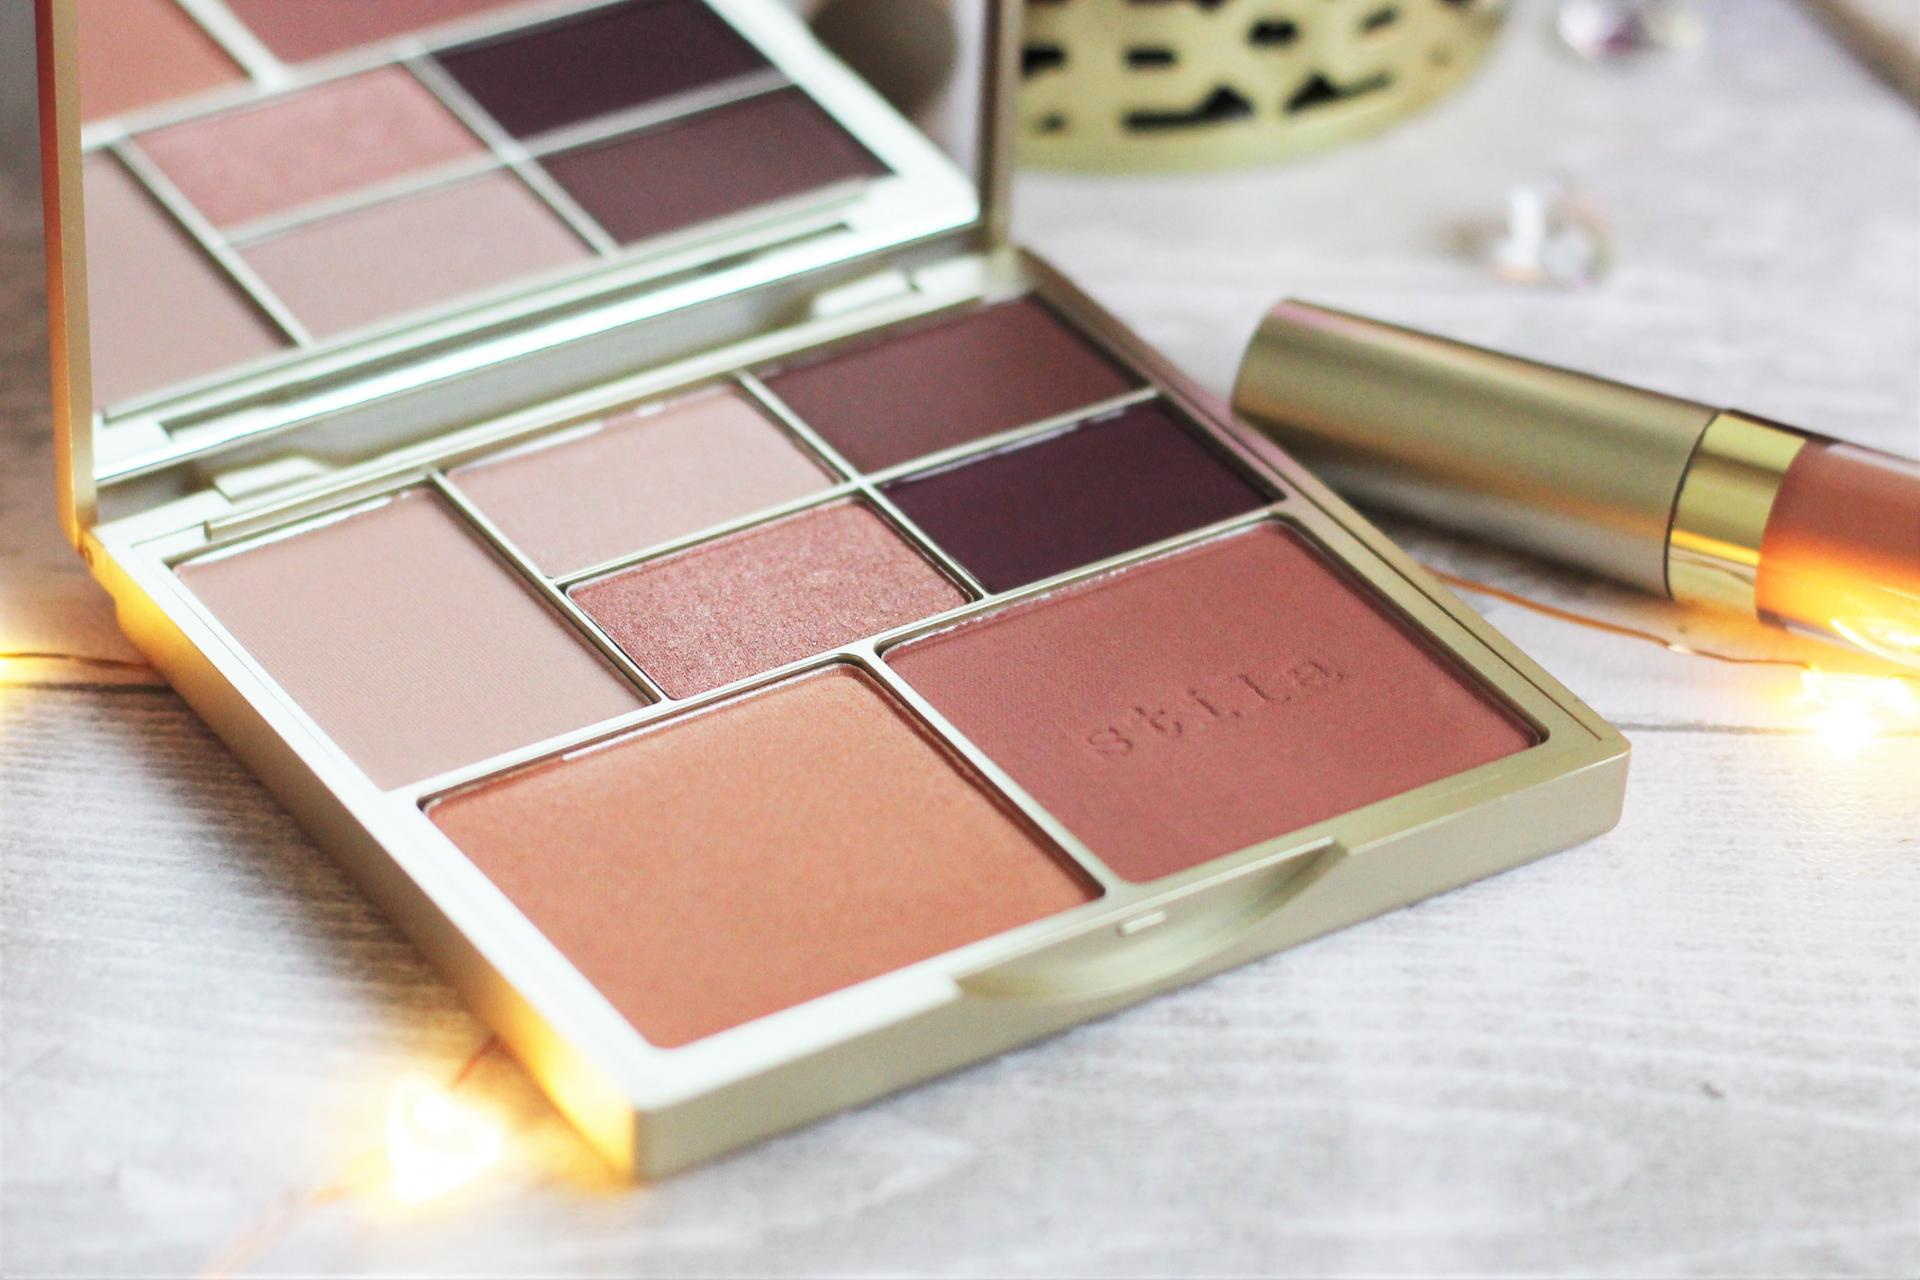 Stila Perfect Me, Perfect Hue Palette Stila Stay All Day Liquid Lipstick in Dolce